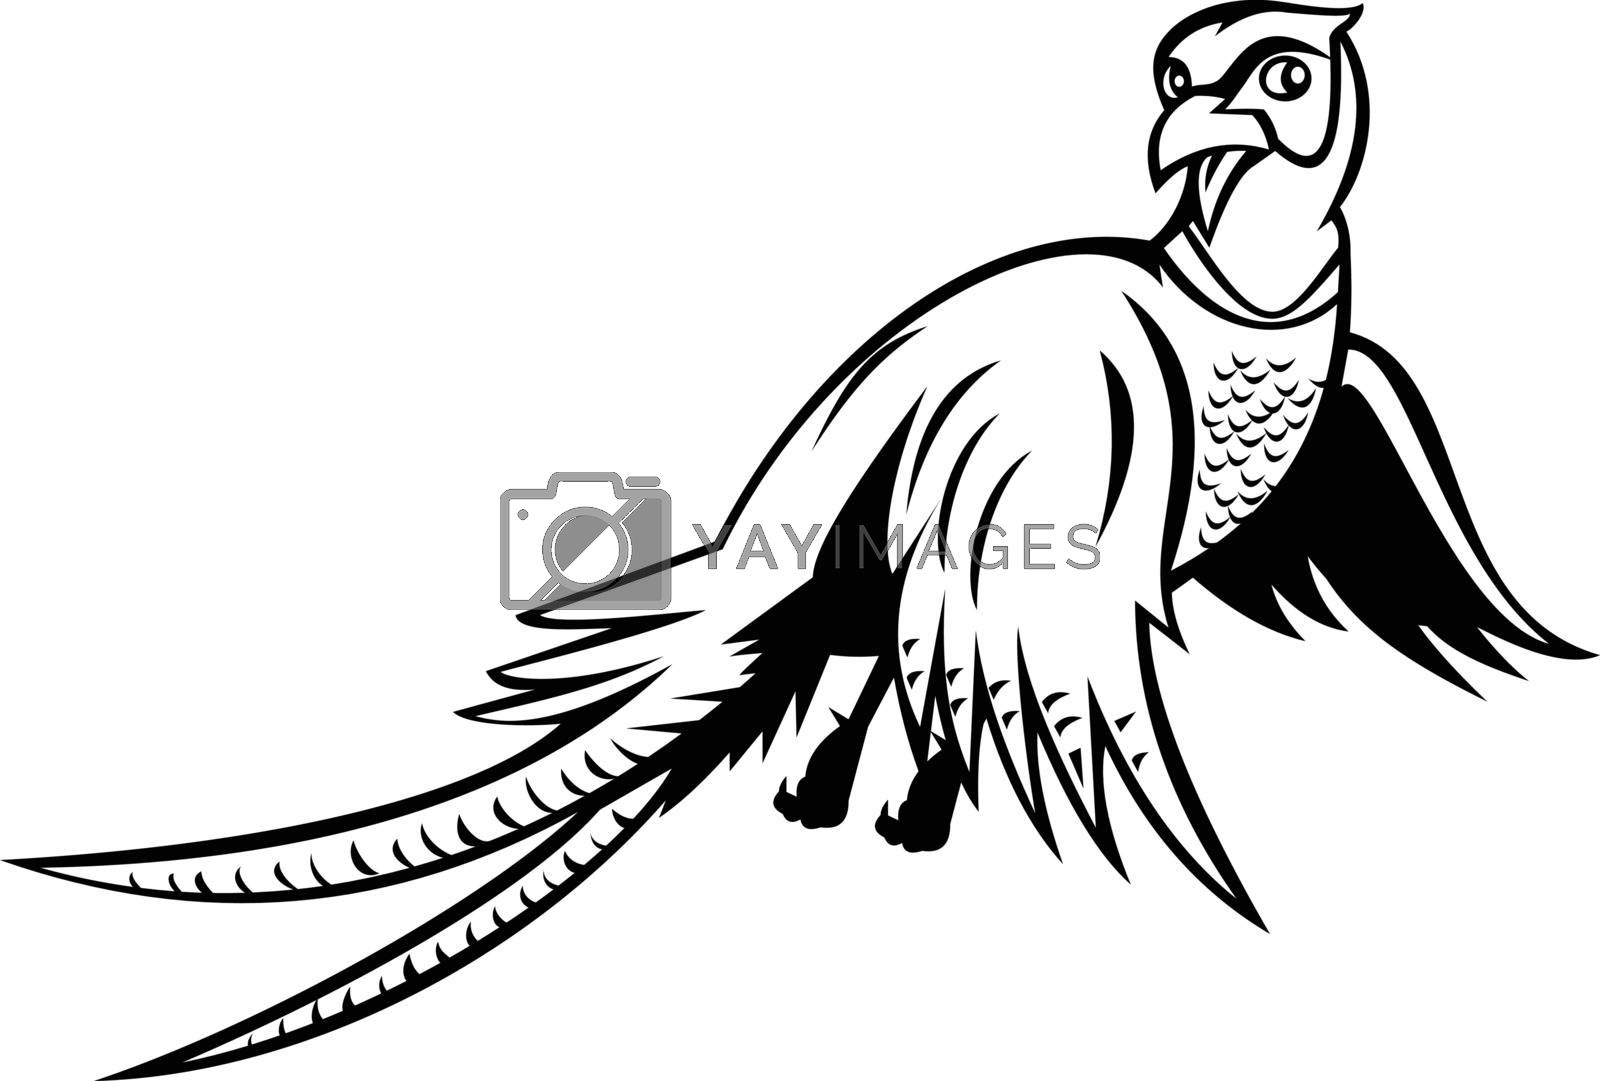 Cartoon style illustration of a ring-necked pheasant Phasianus colchicus, a game bird, flying up viewed from low angle on isolated background done in black and white style.